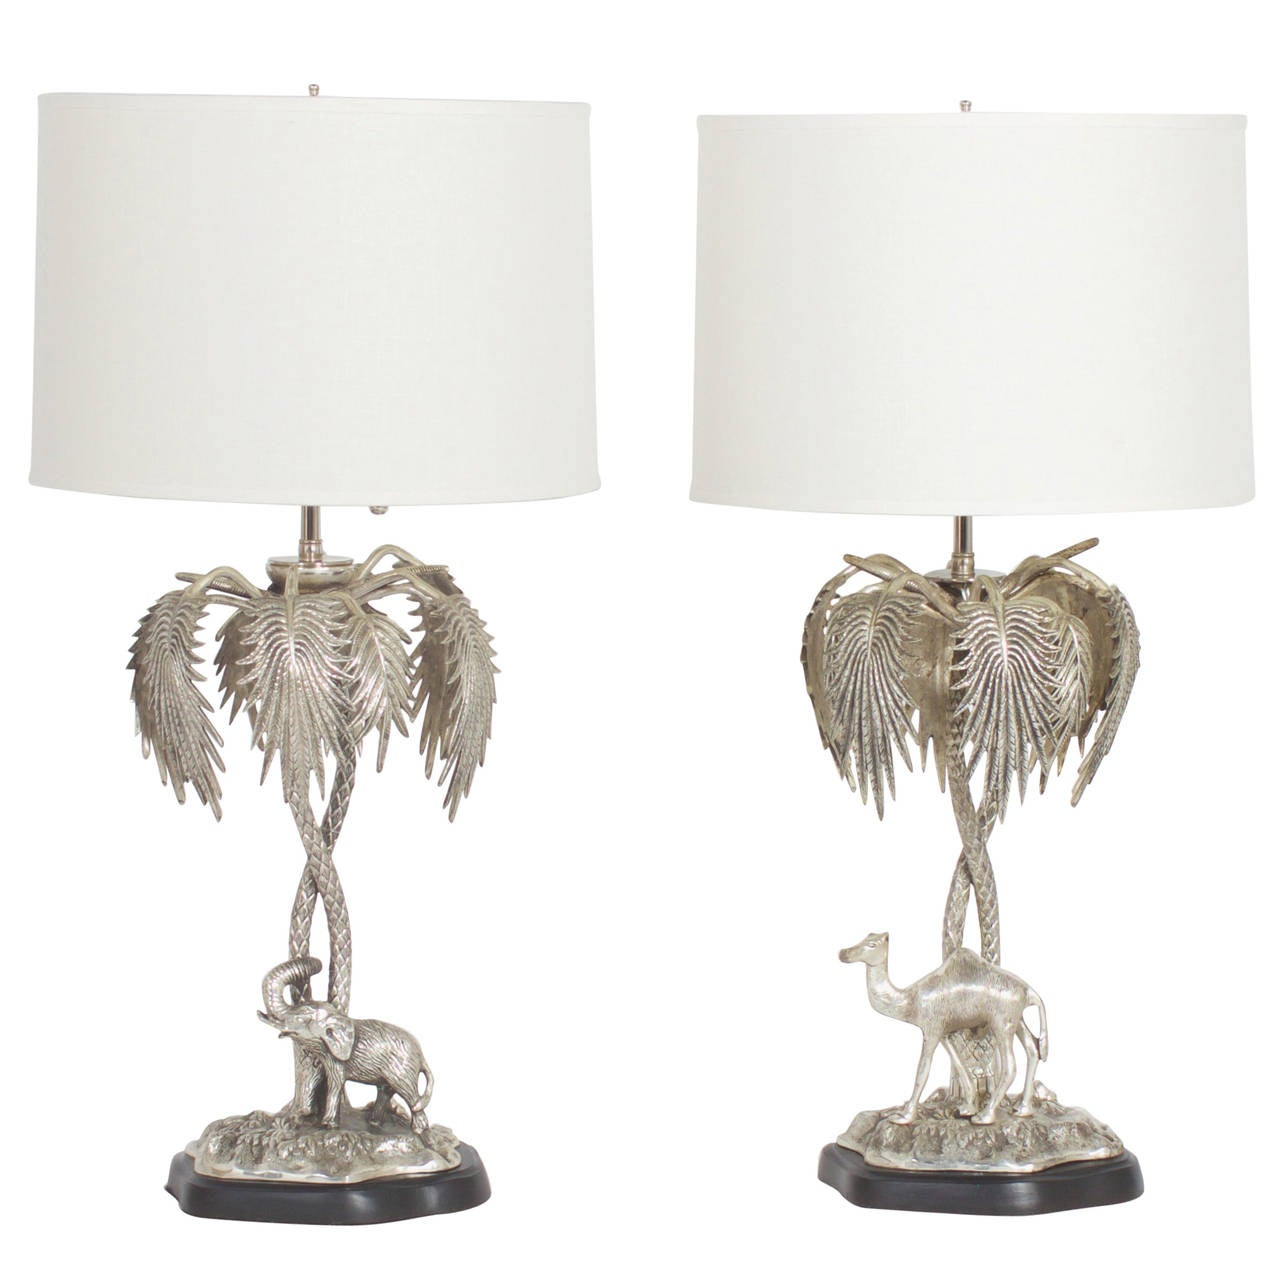 Stacked elephant lamp - Pair Of Silvered Metal Palm Tree Lamps With Camel And Elephant 1